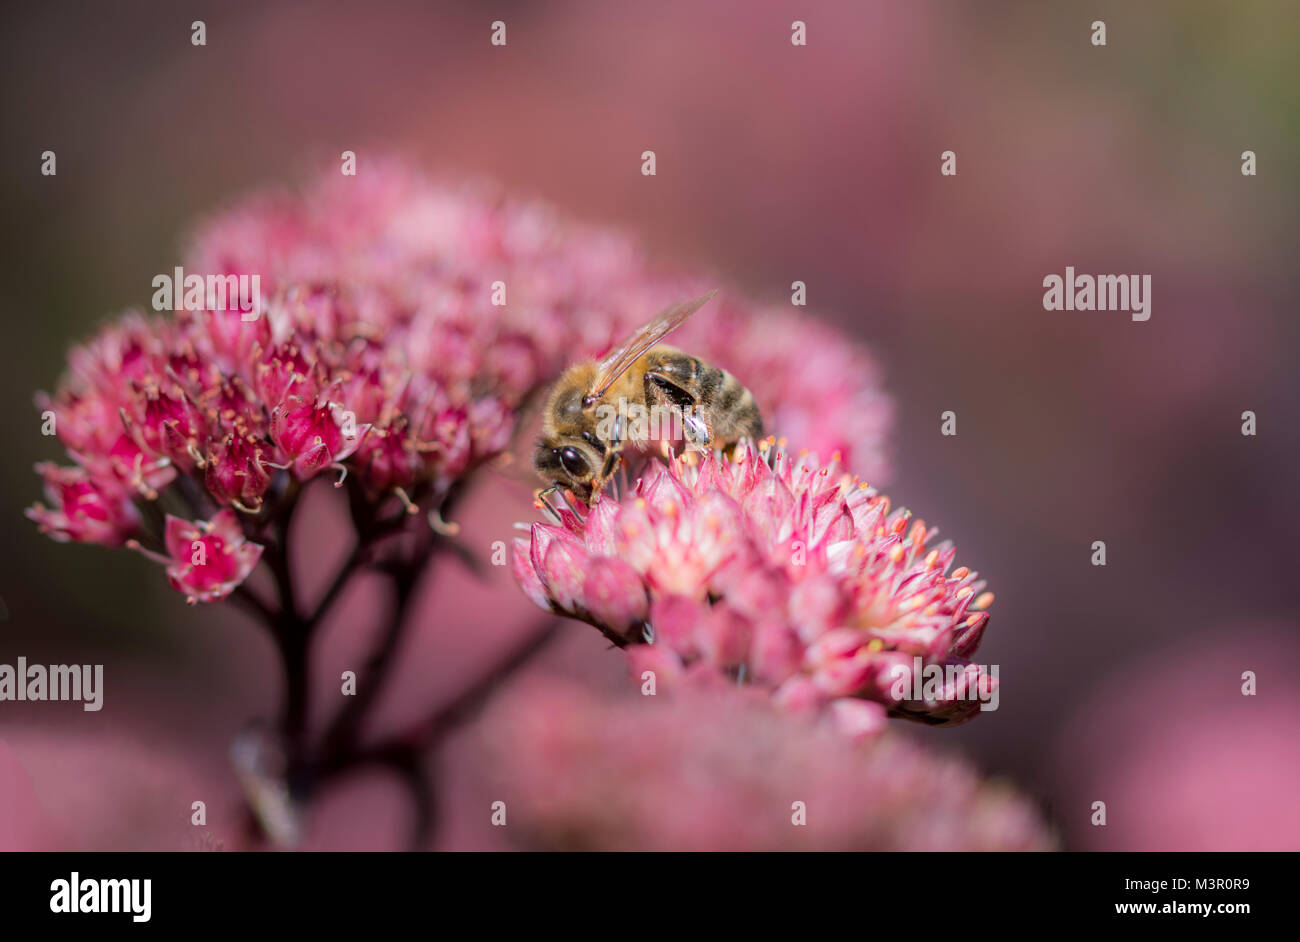 Honey bee on pink flower soft focus - Stock Image